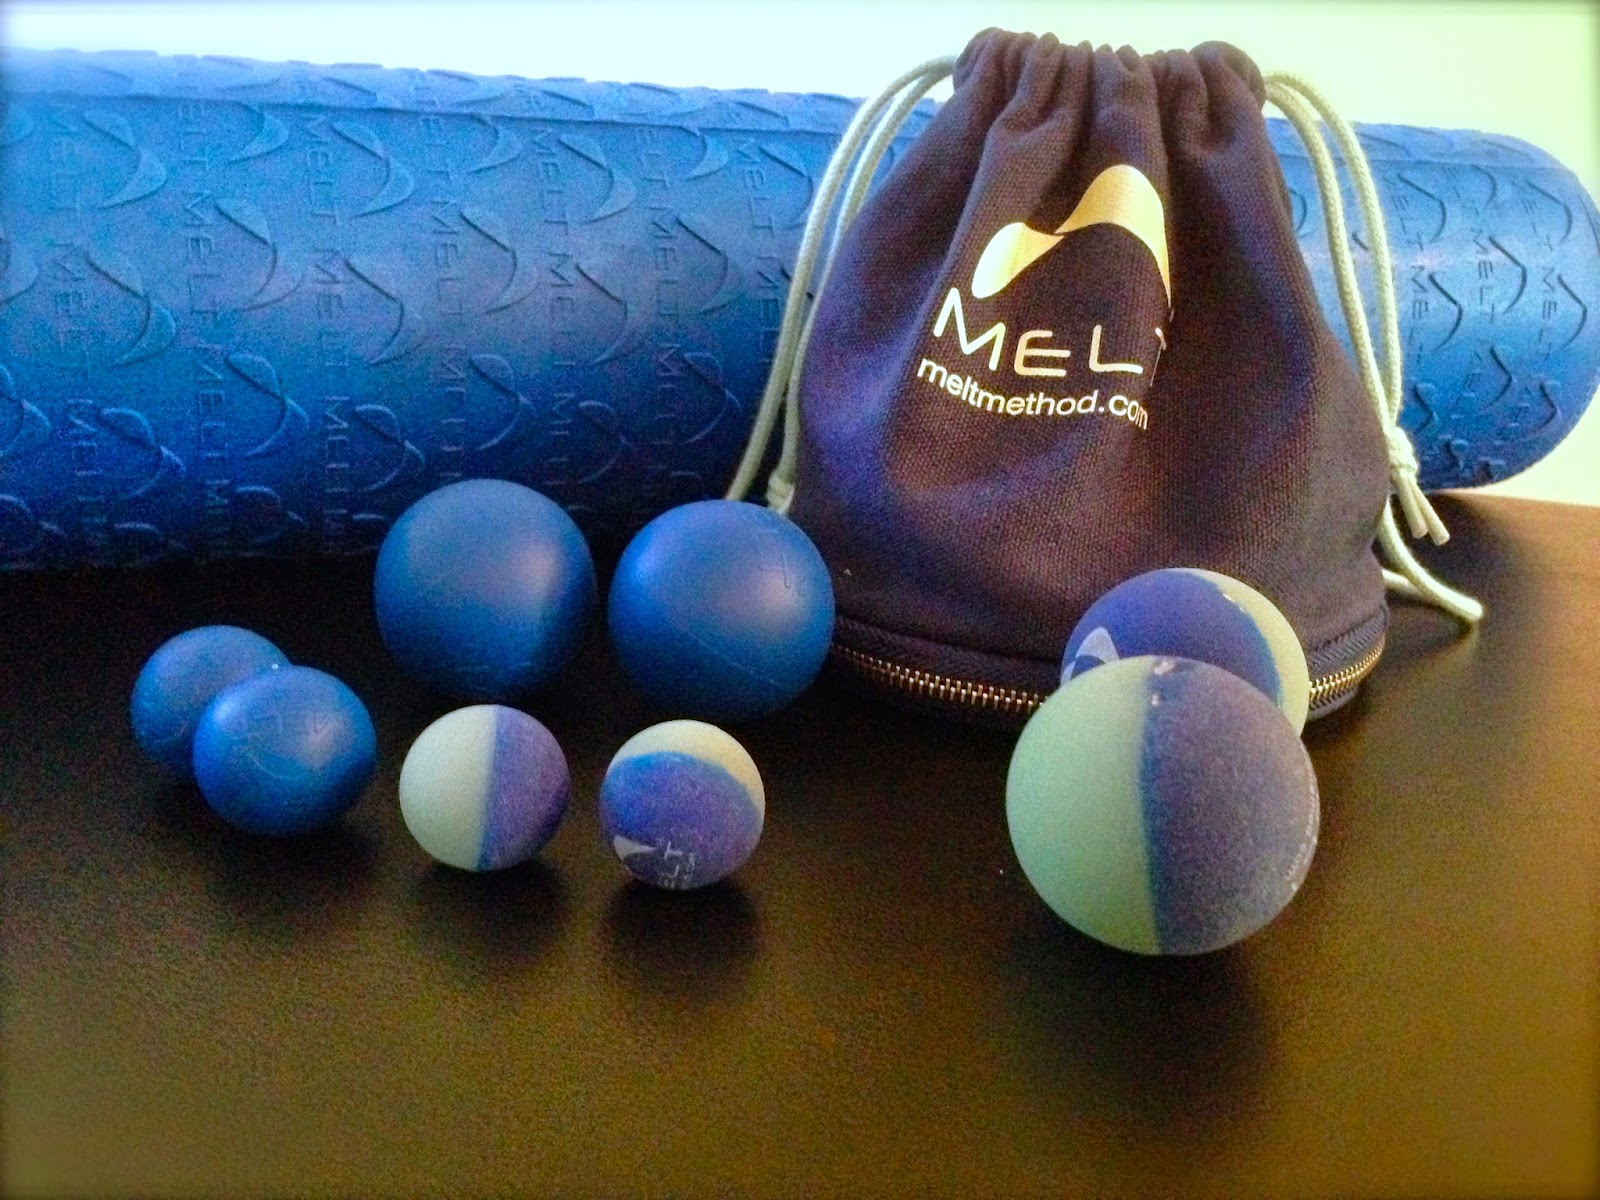 Hydrating fascial tissue can relieve pain